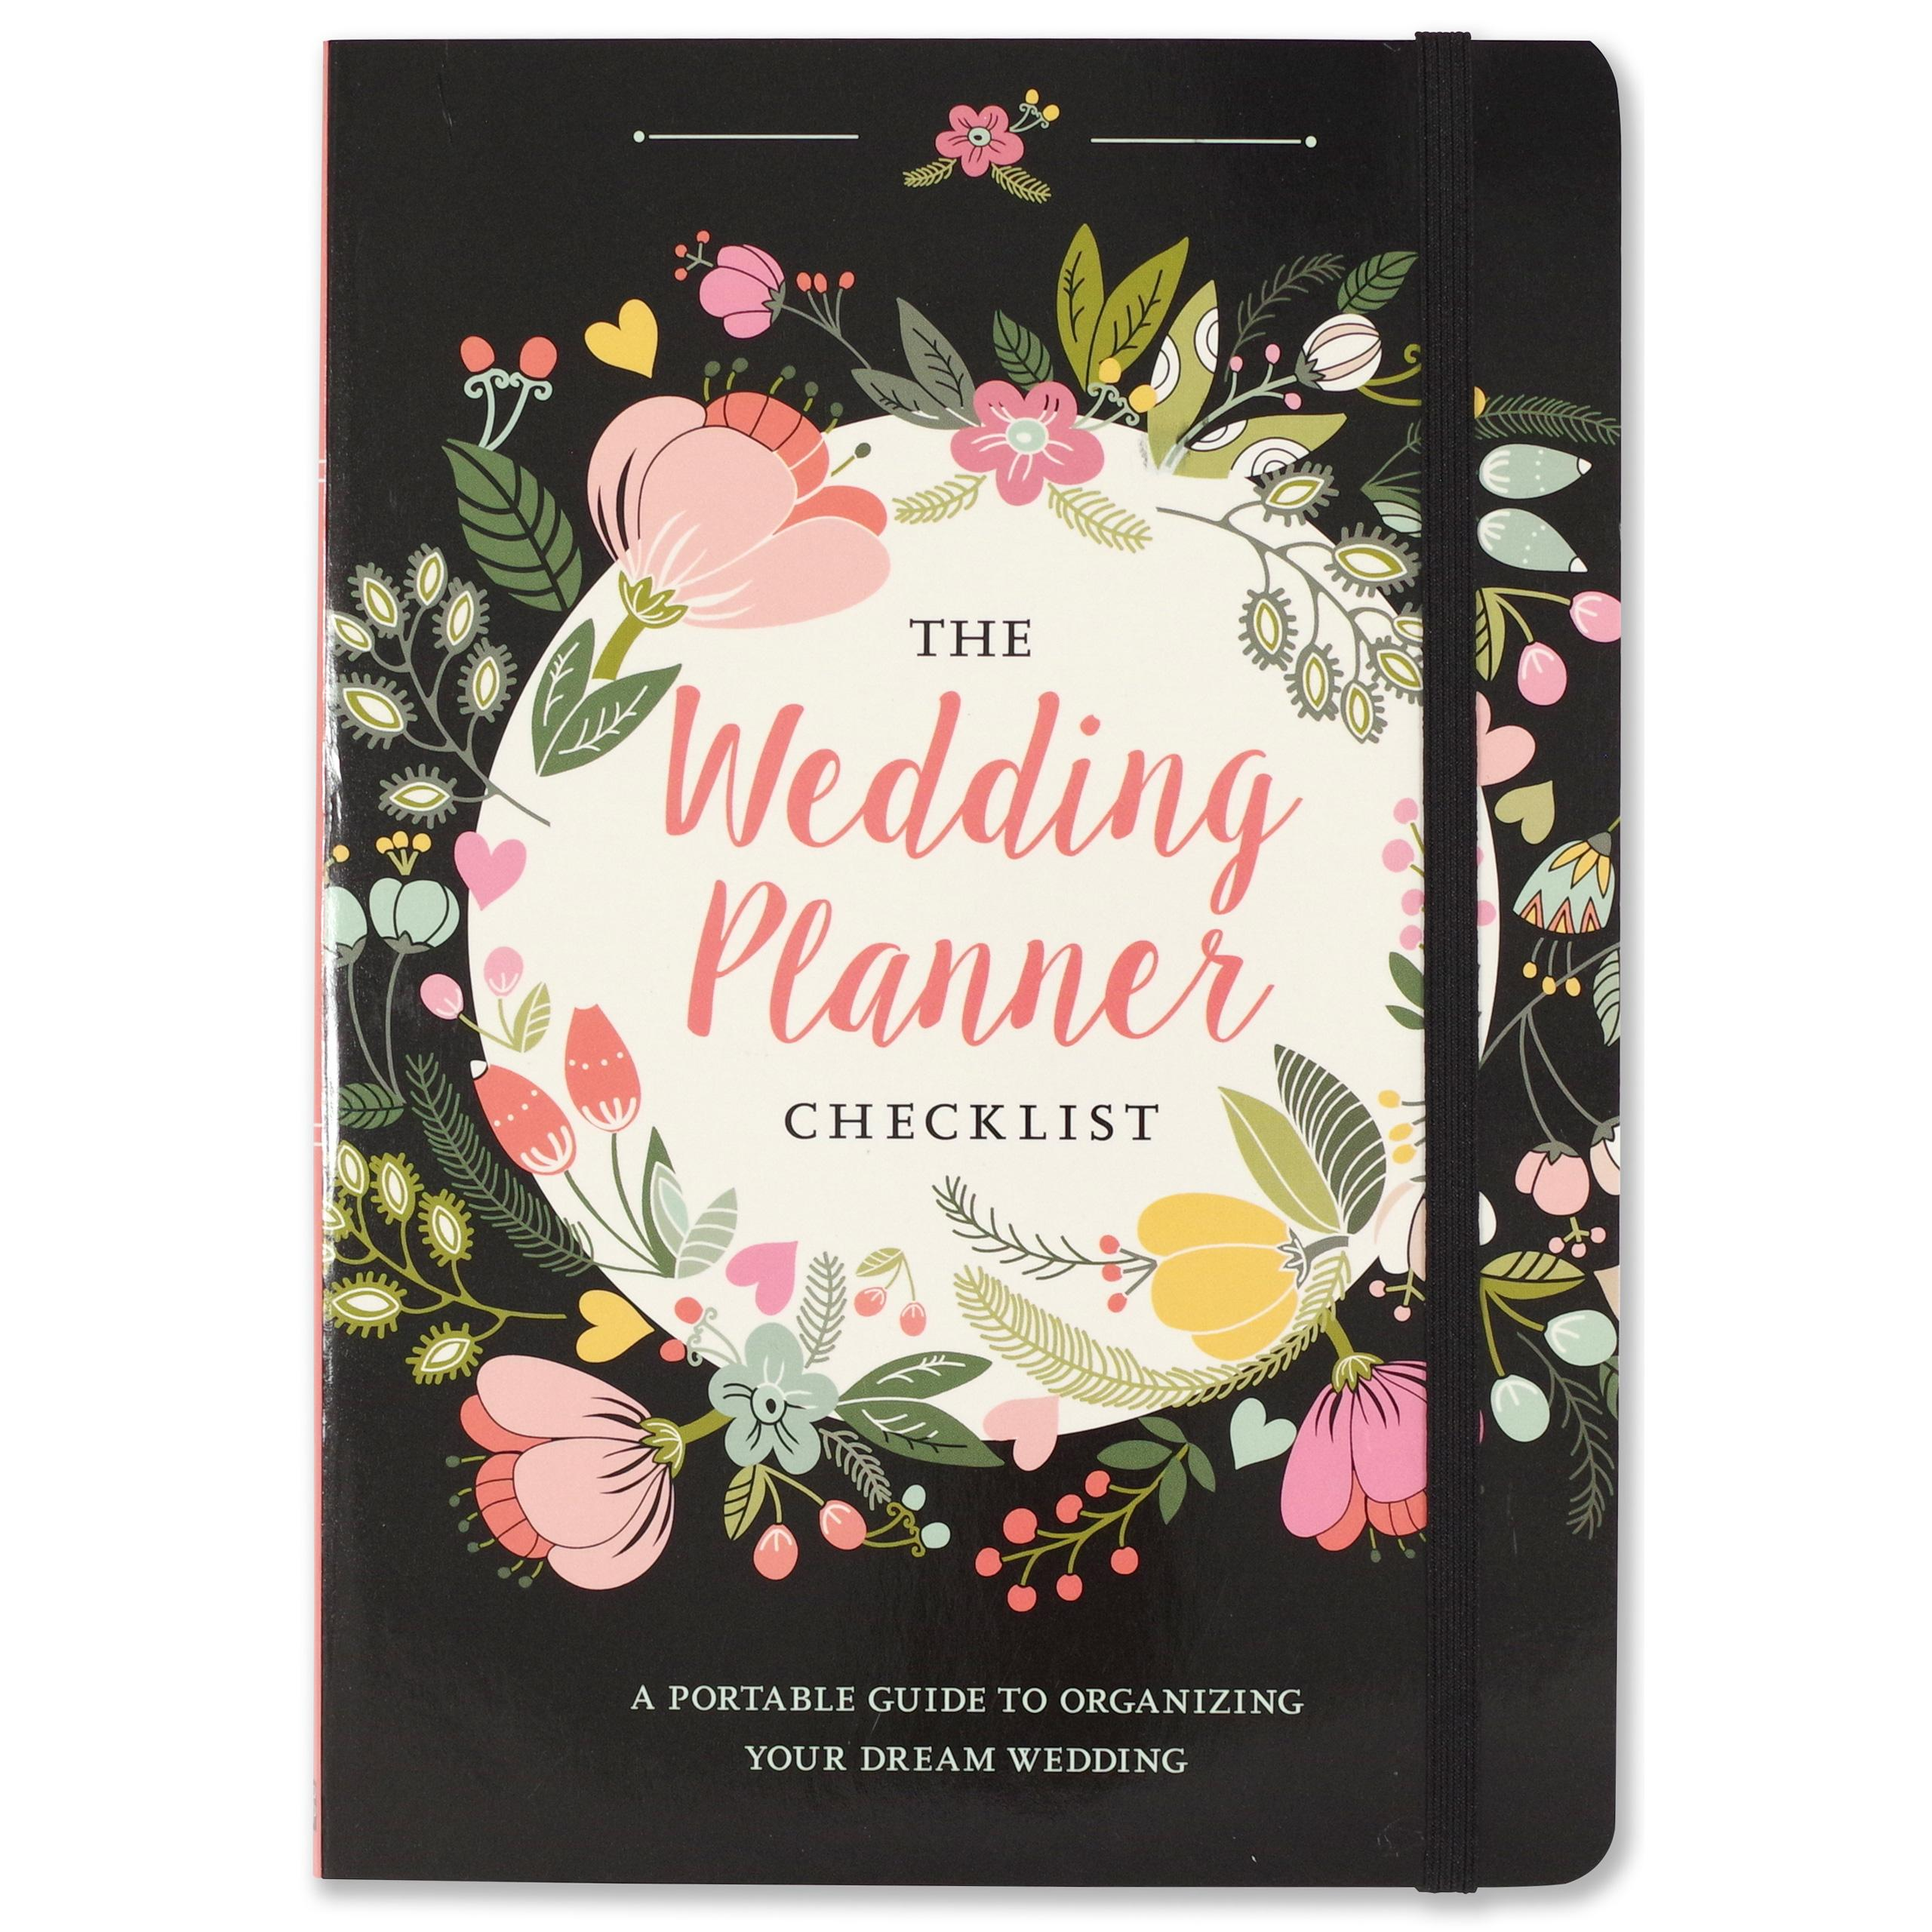 The Wedding Planner Checklist (A Portable Guide To